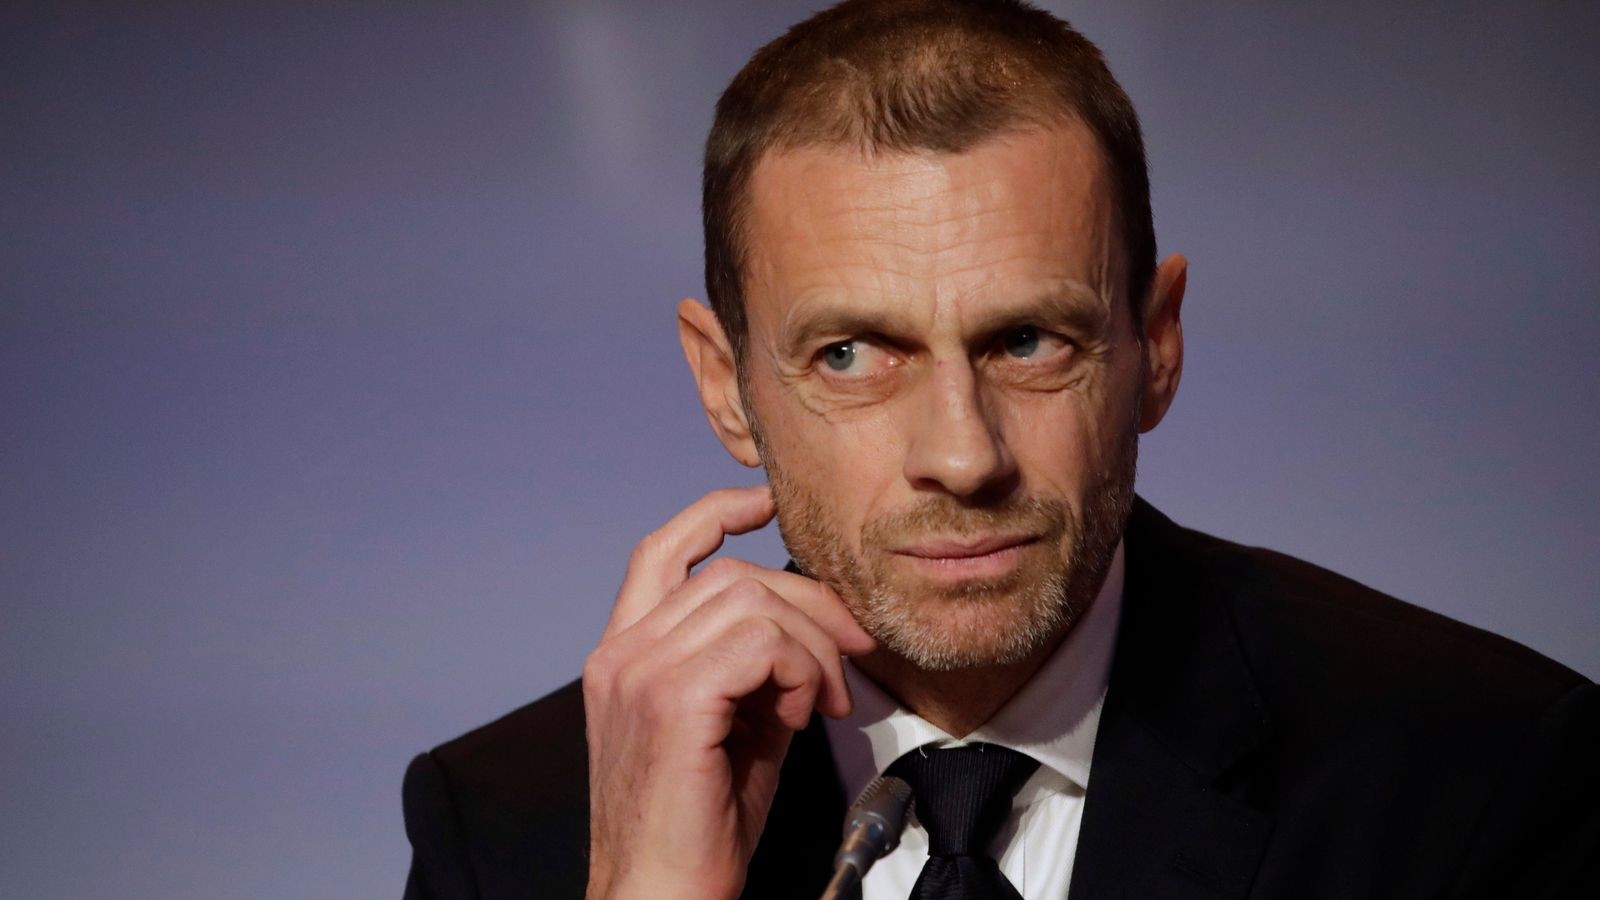 European Super League: UEFA president Aleksandr Ceferin condemns 'disgraceful' proposals and confirms players to be banned from World Cups and Euros